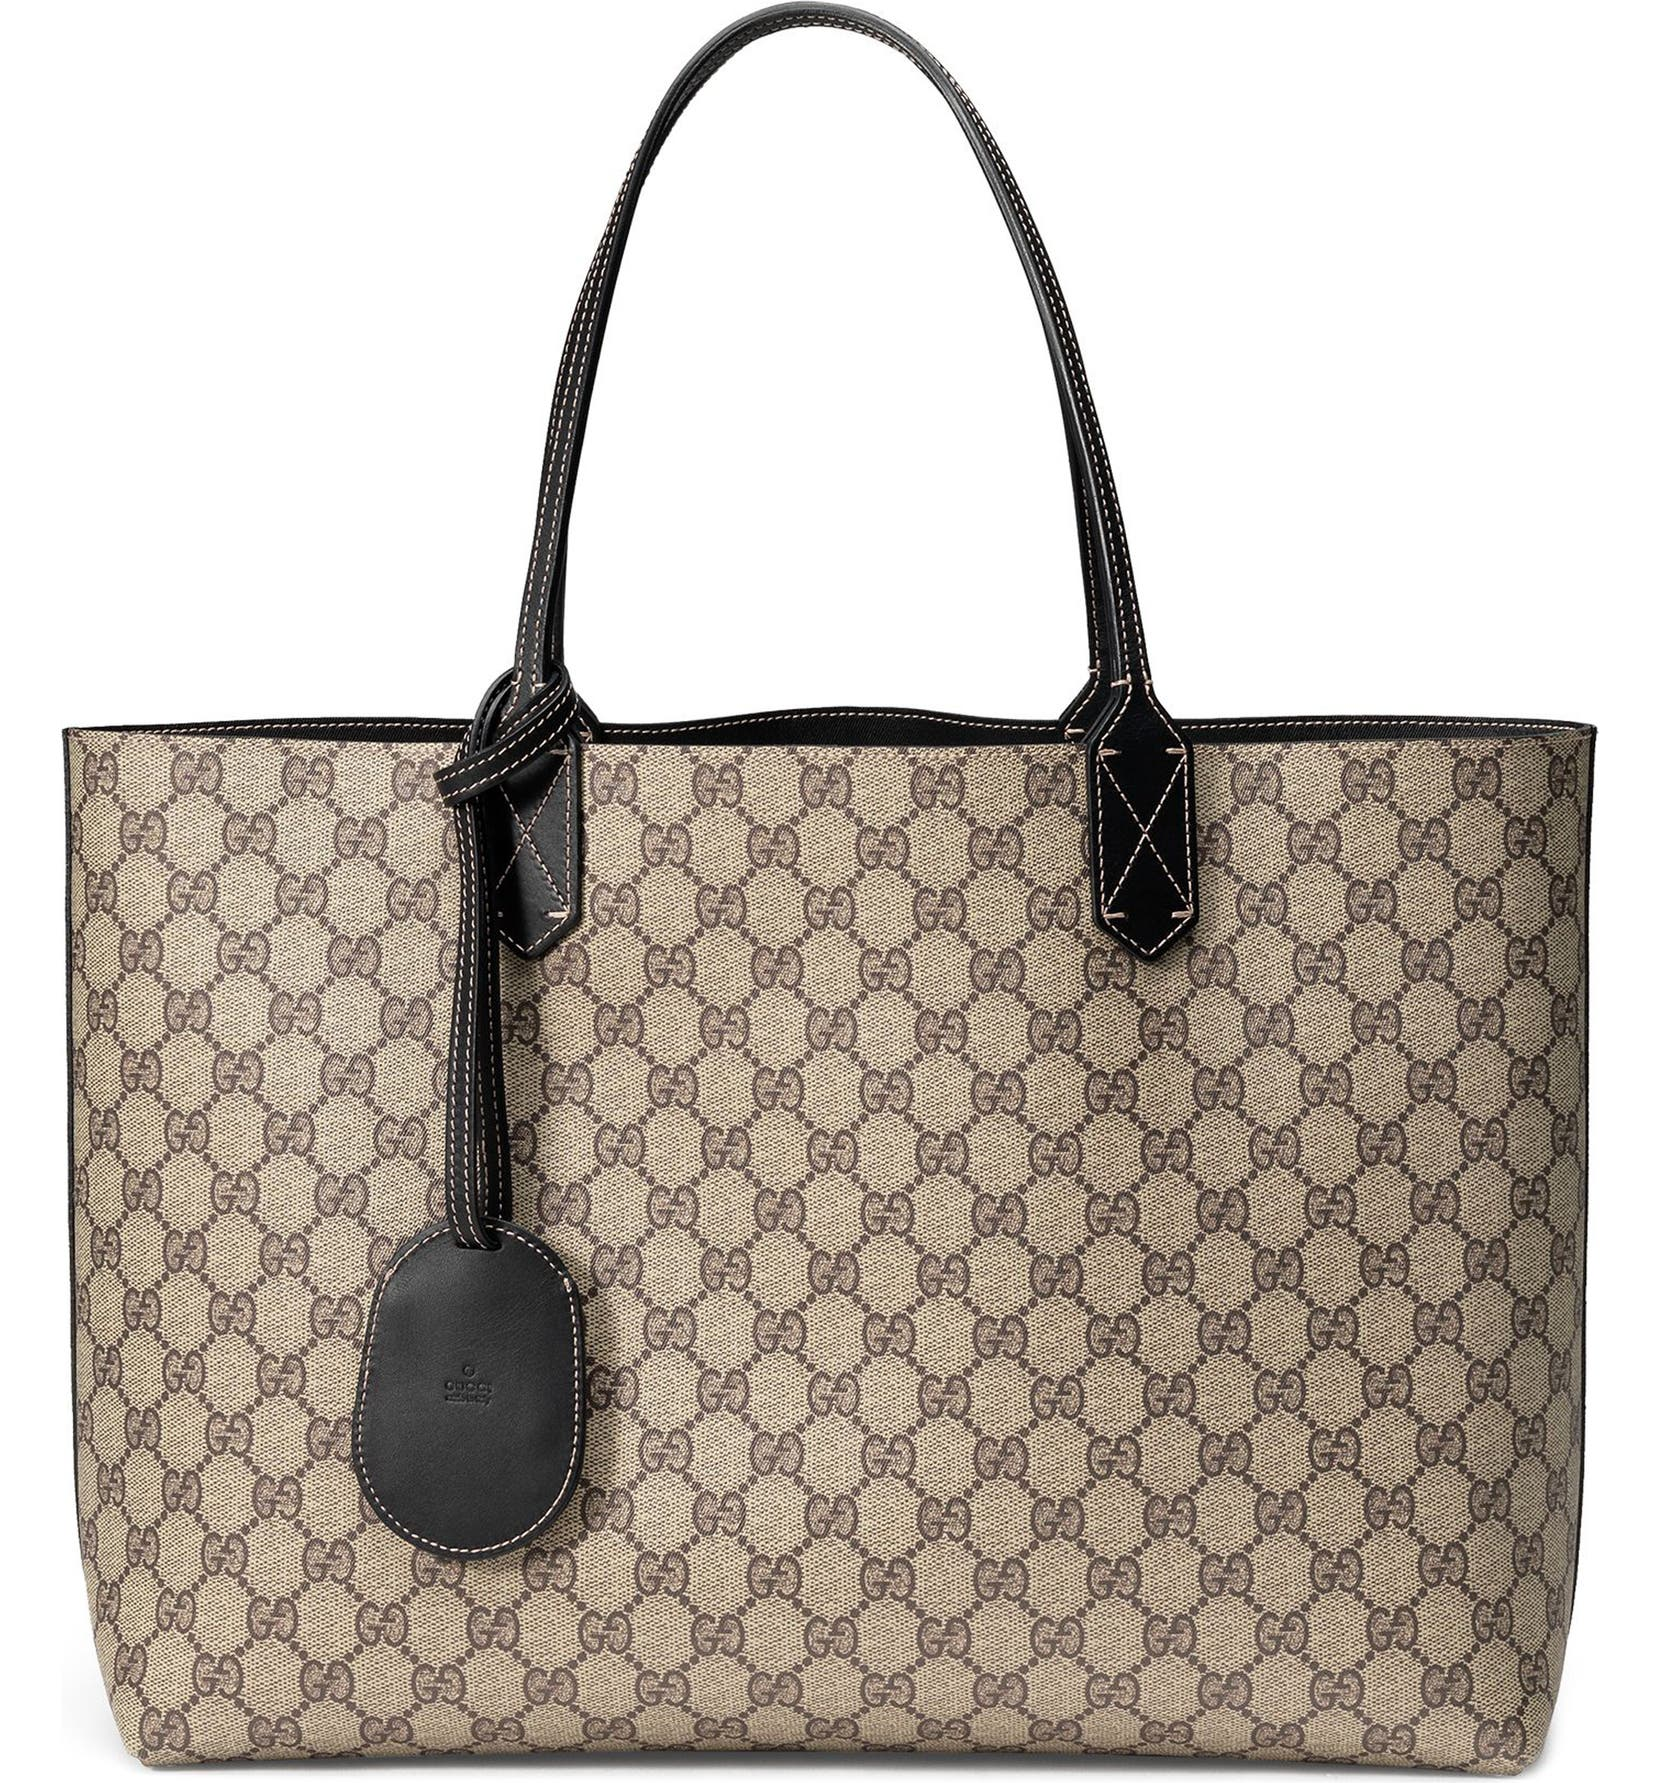 08be90de3aa Gucci Medium Turnaround Reversible Leather Tote